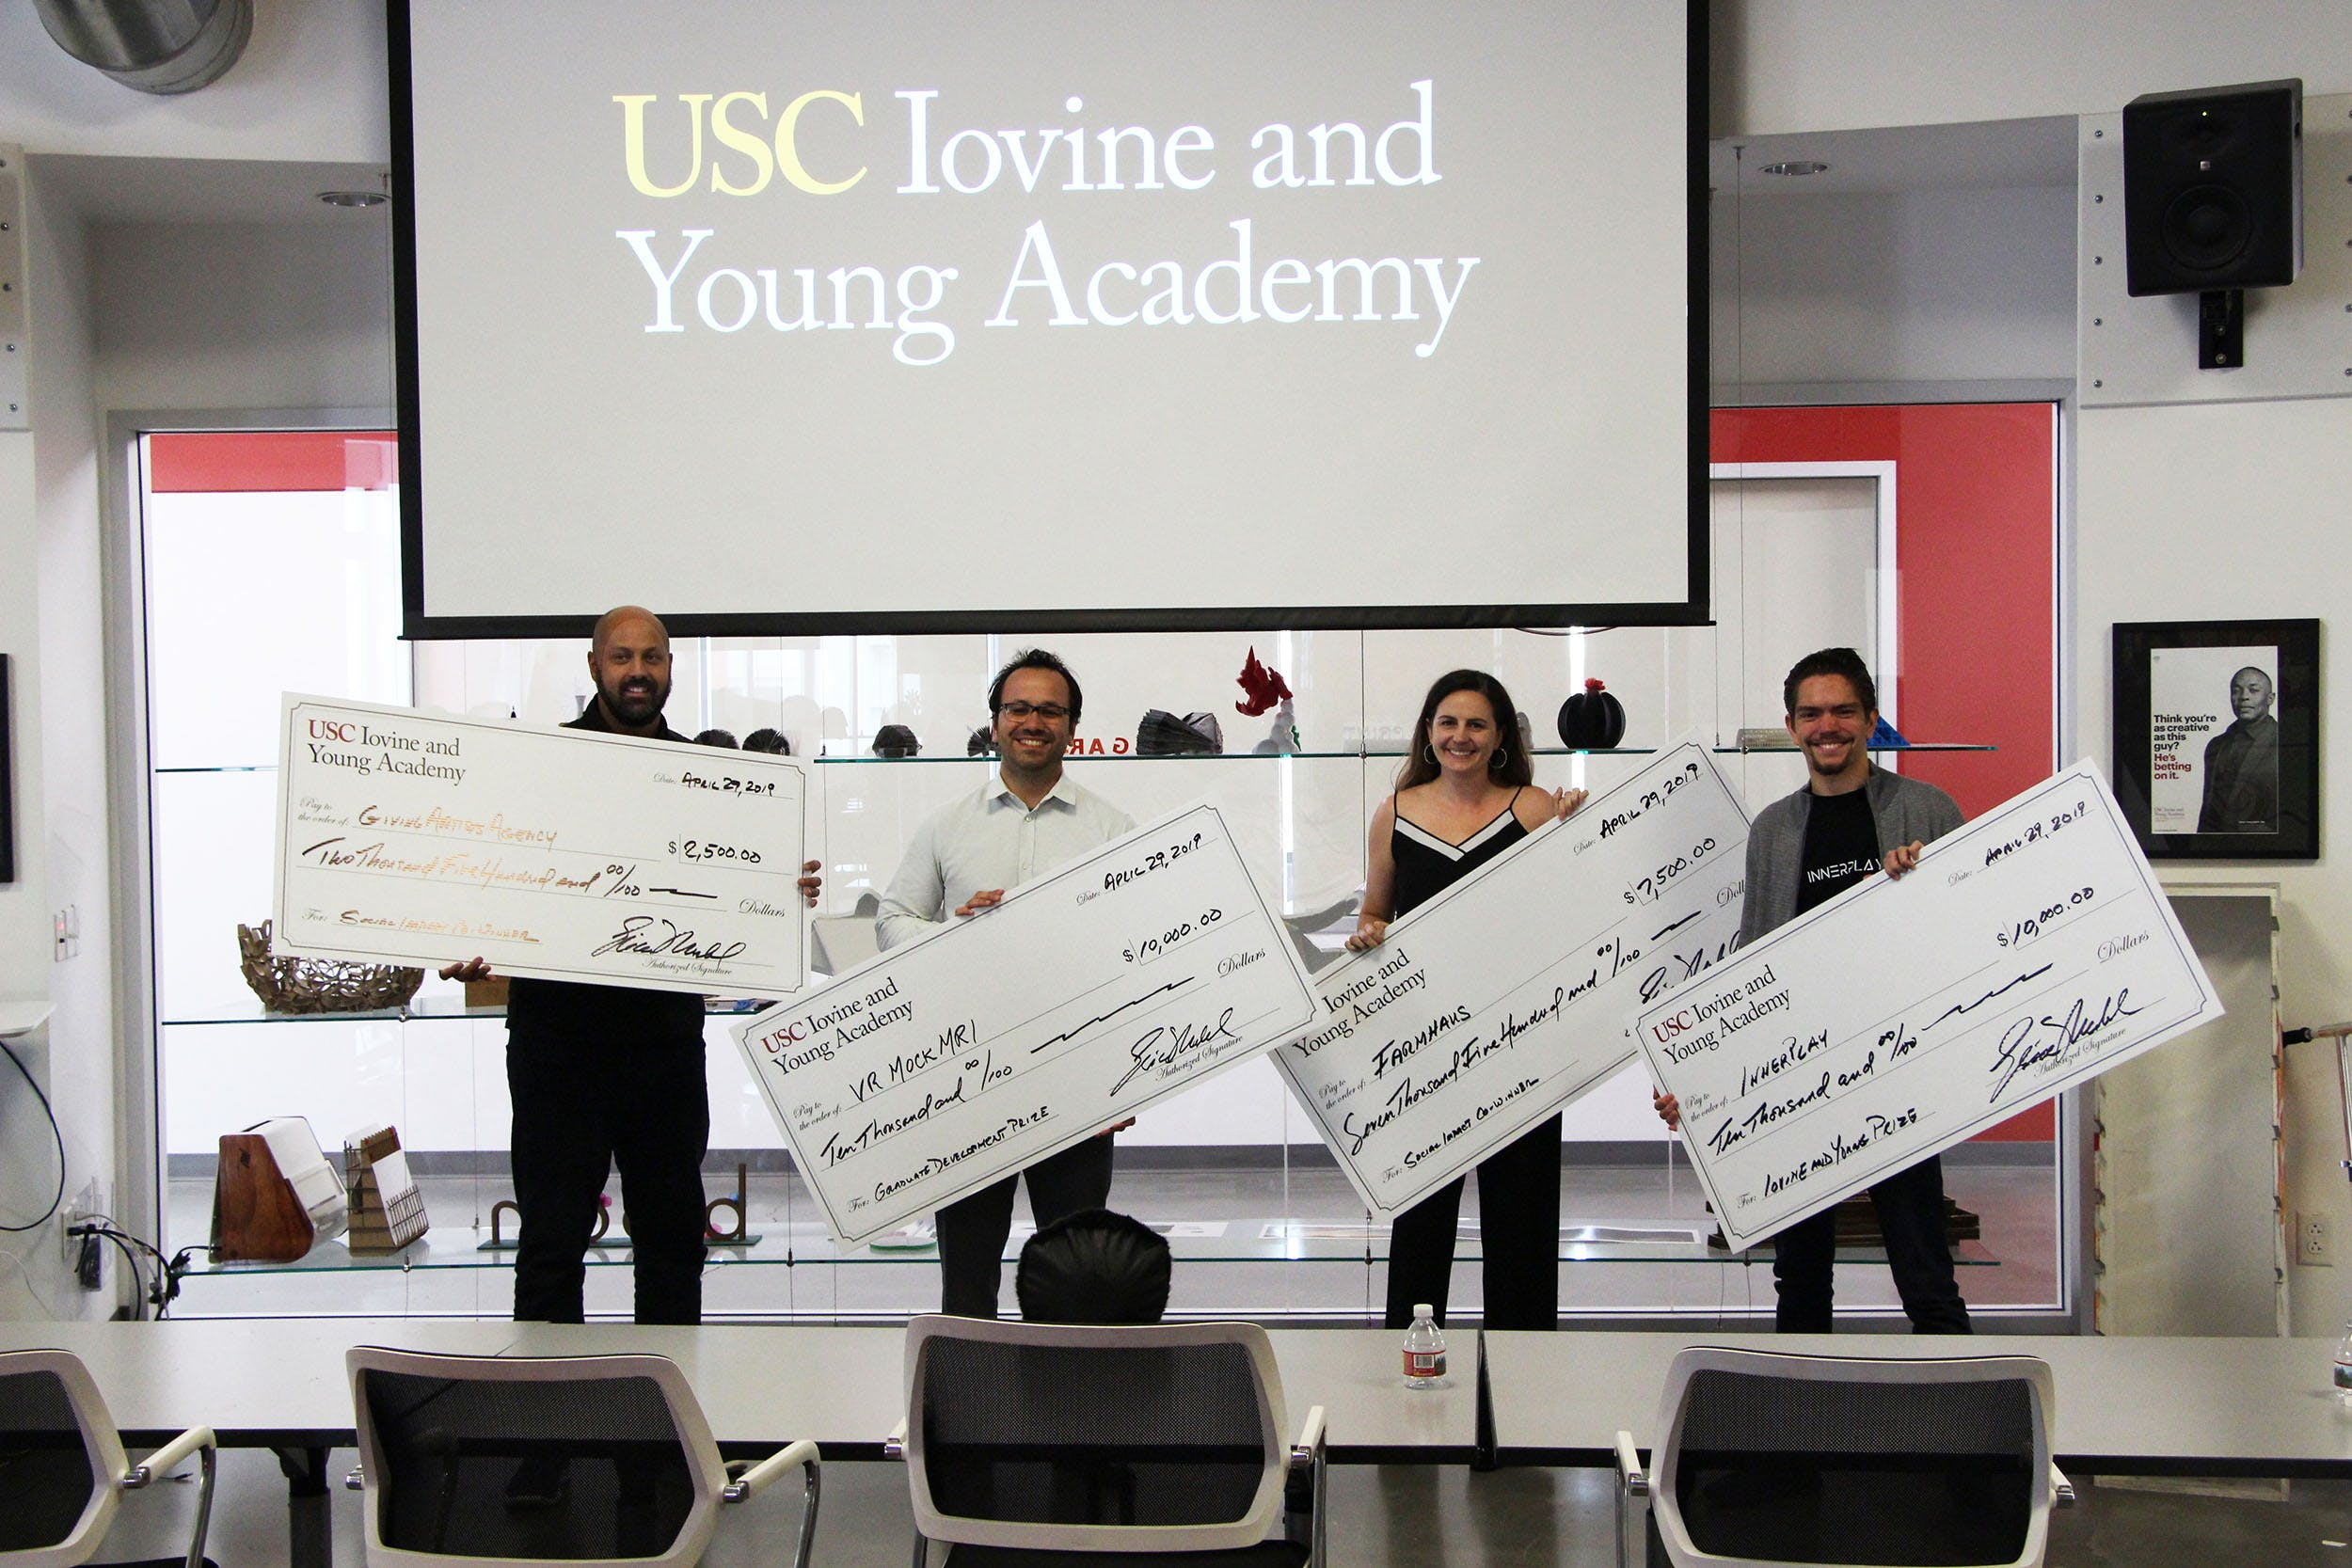 4 students each holding giant check